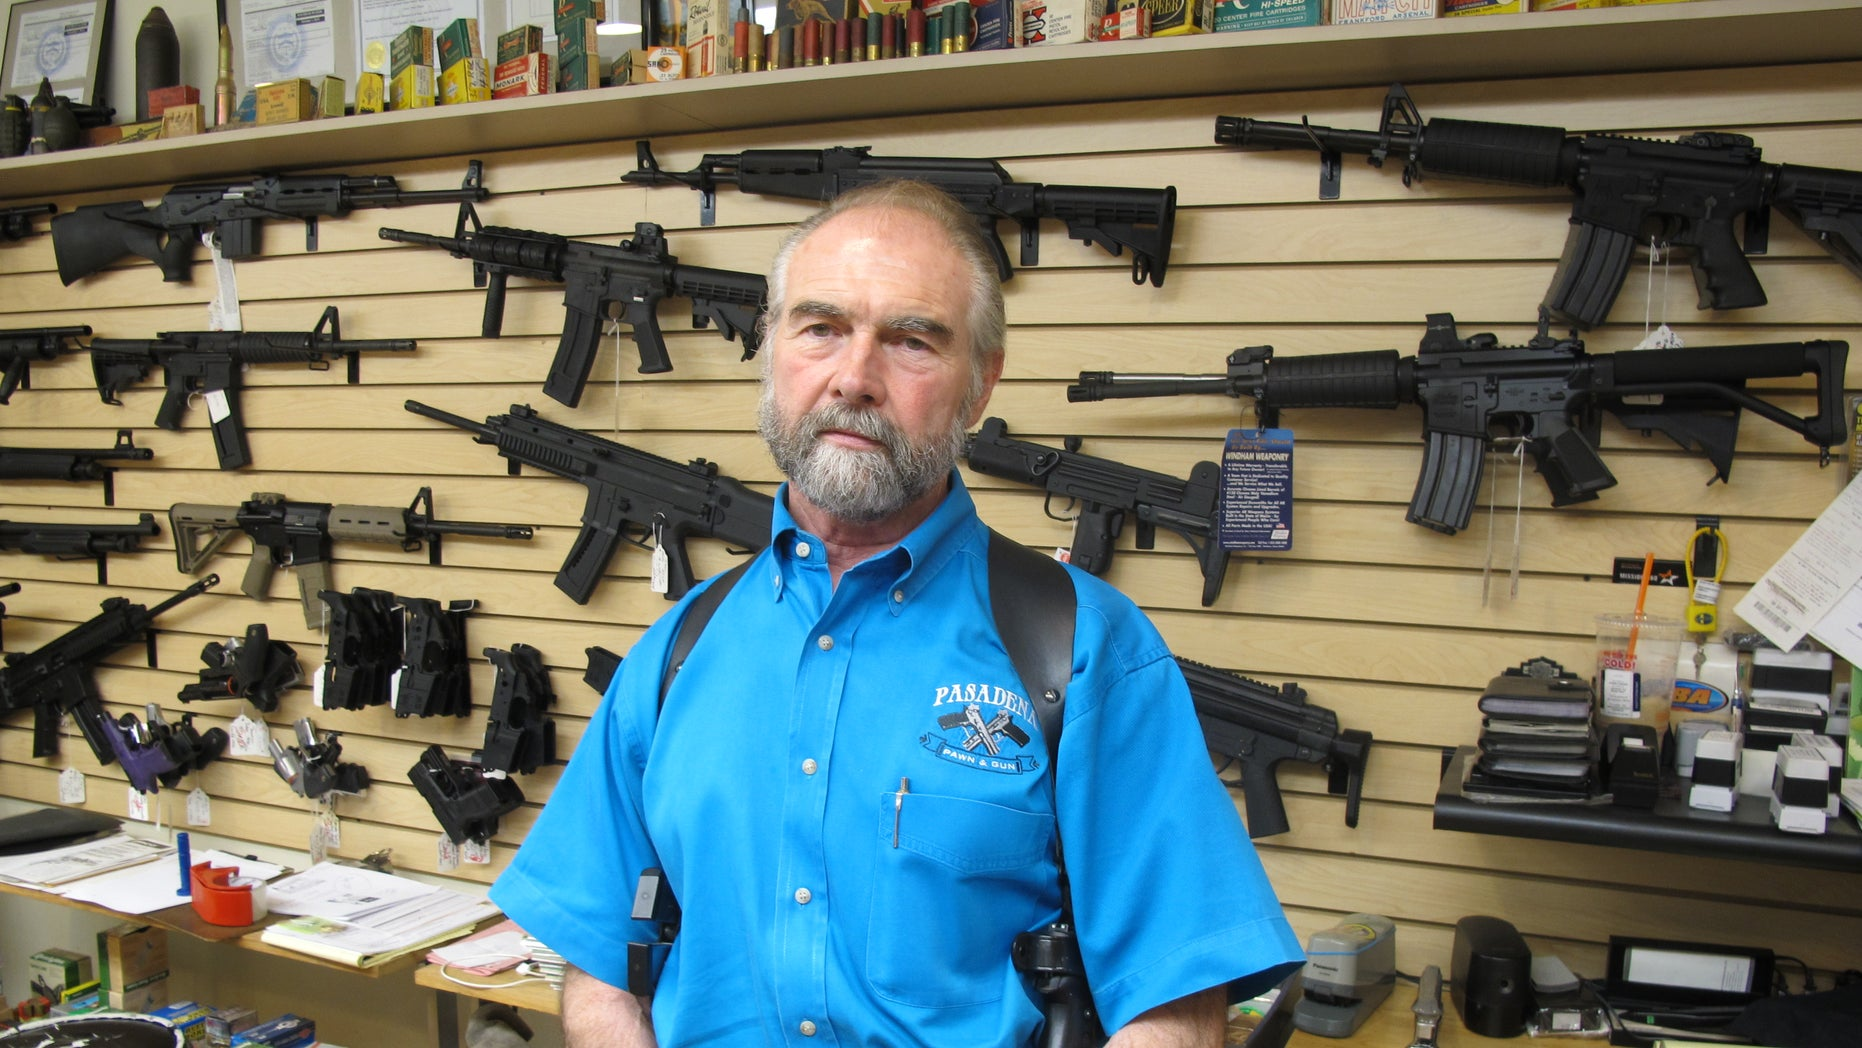 Sept. 26, 2013: Frank Loane, owner of Pasadena Pawn and Gun, stands in front of a wall of assault rifles at his store in Pasadena, Md.